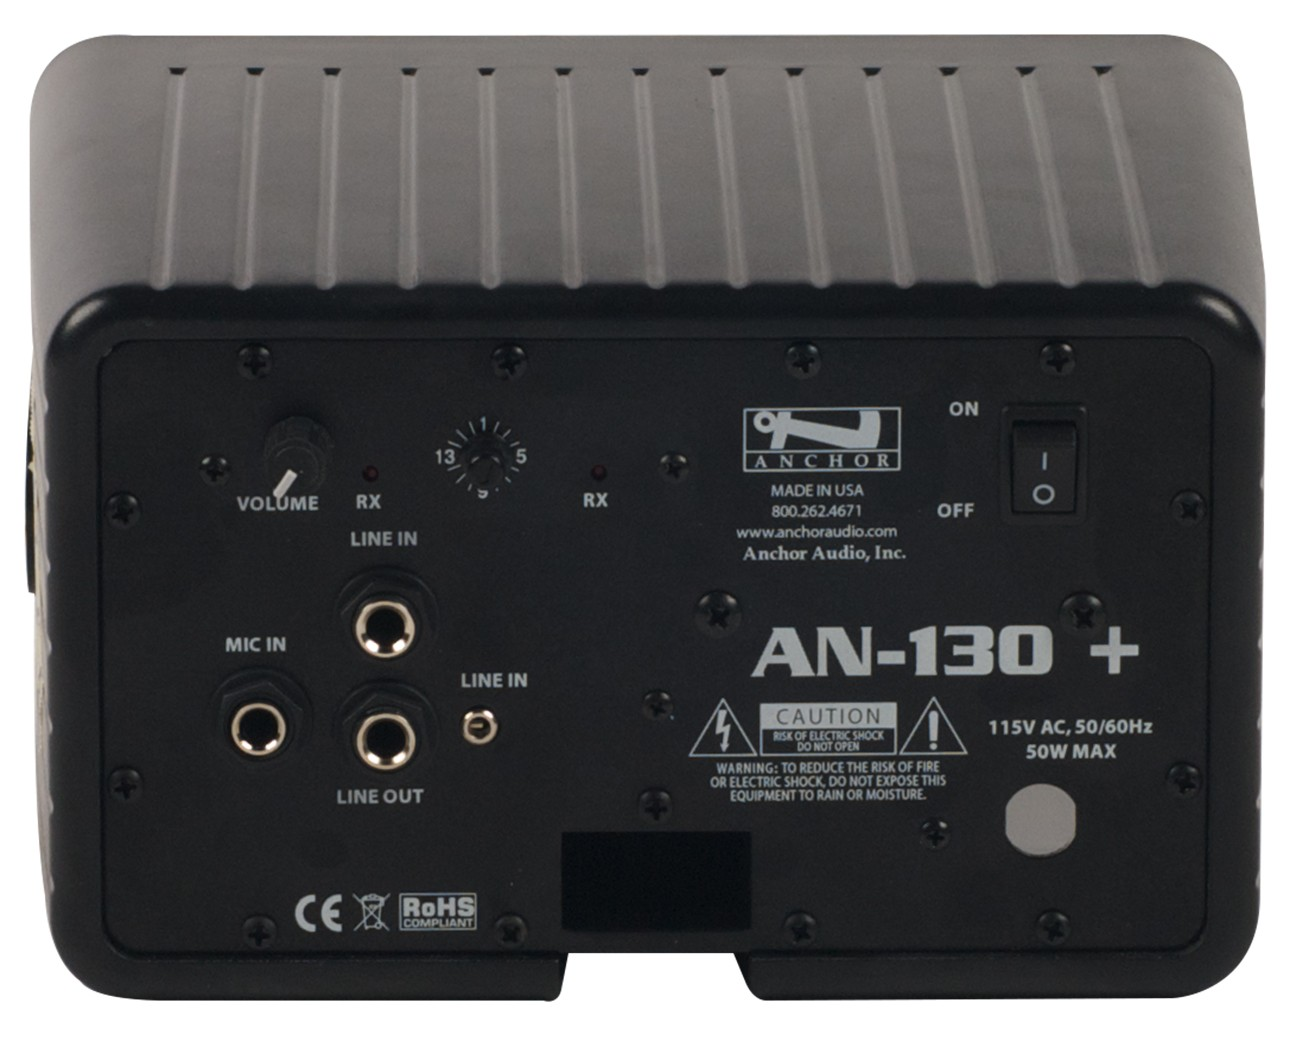 Anchor Audio AN-130F1BK+ AN-130+ with one built-in wireless receiver - black